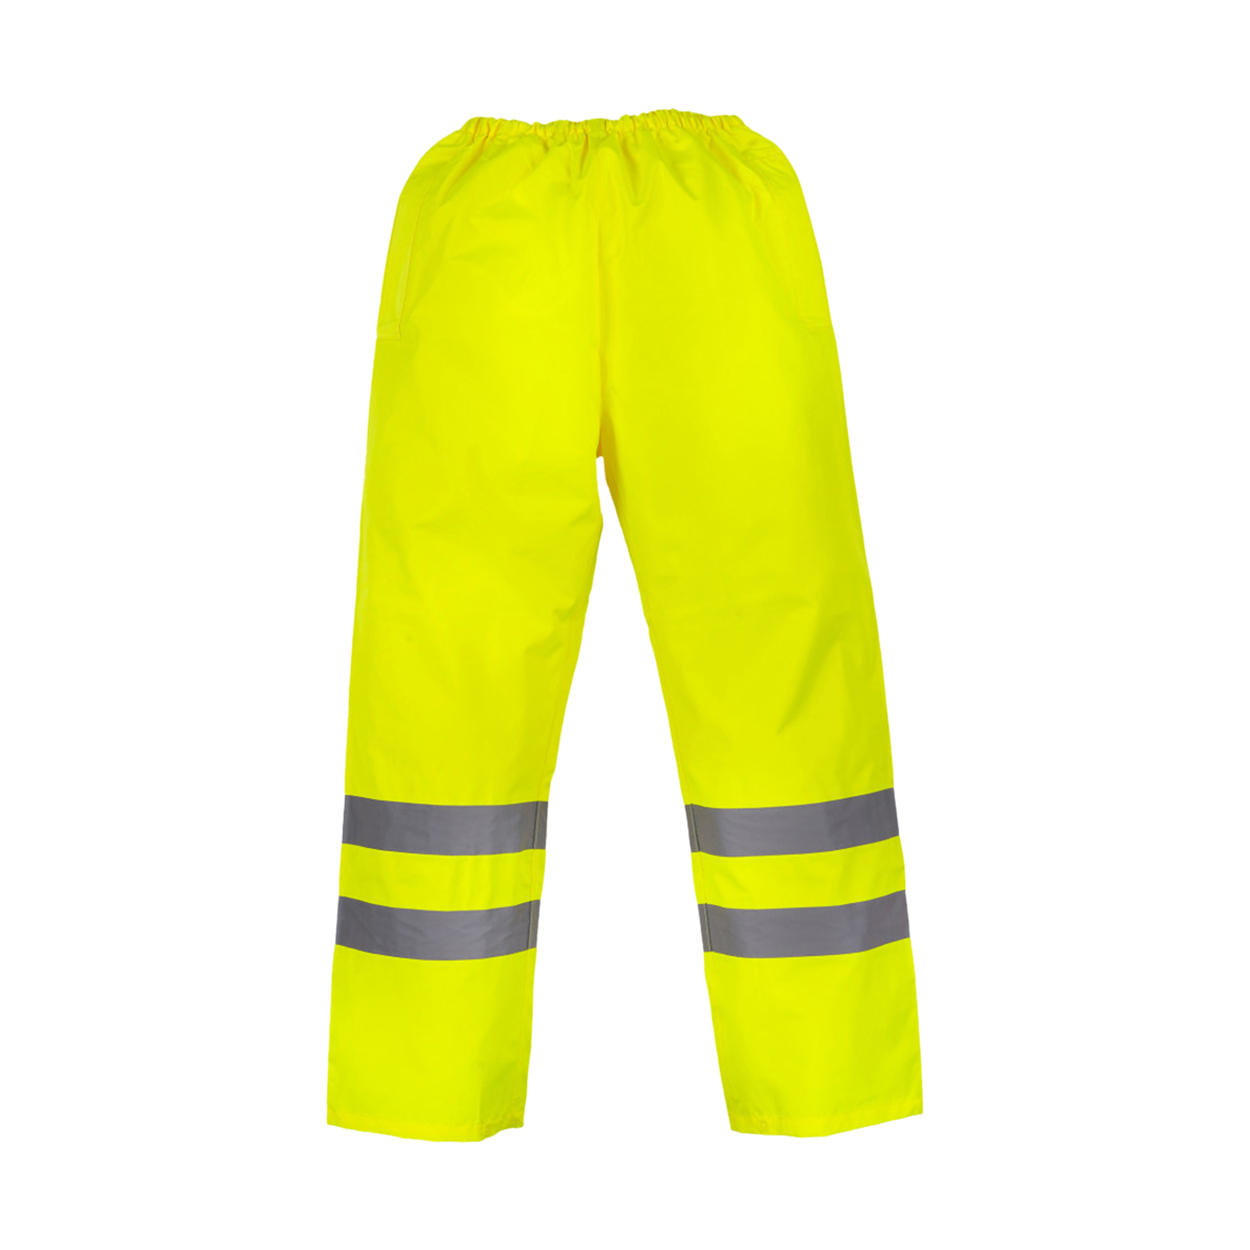 Yoko Mens Hi-Vis Waterproof Contractor Over Trousers (3XL) (Black)